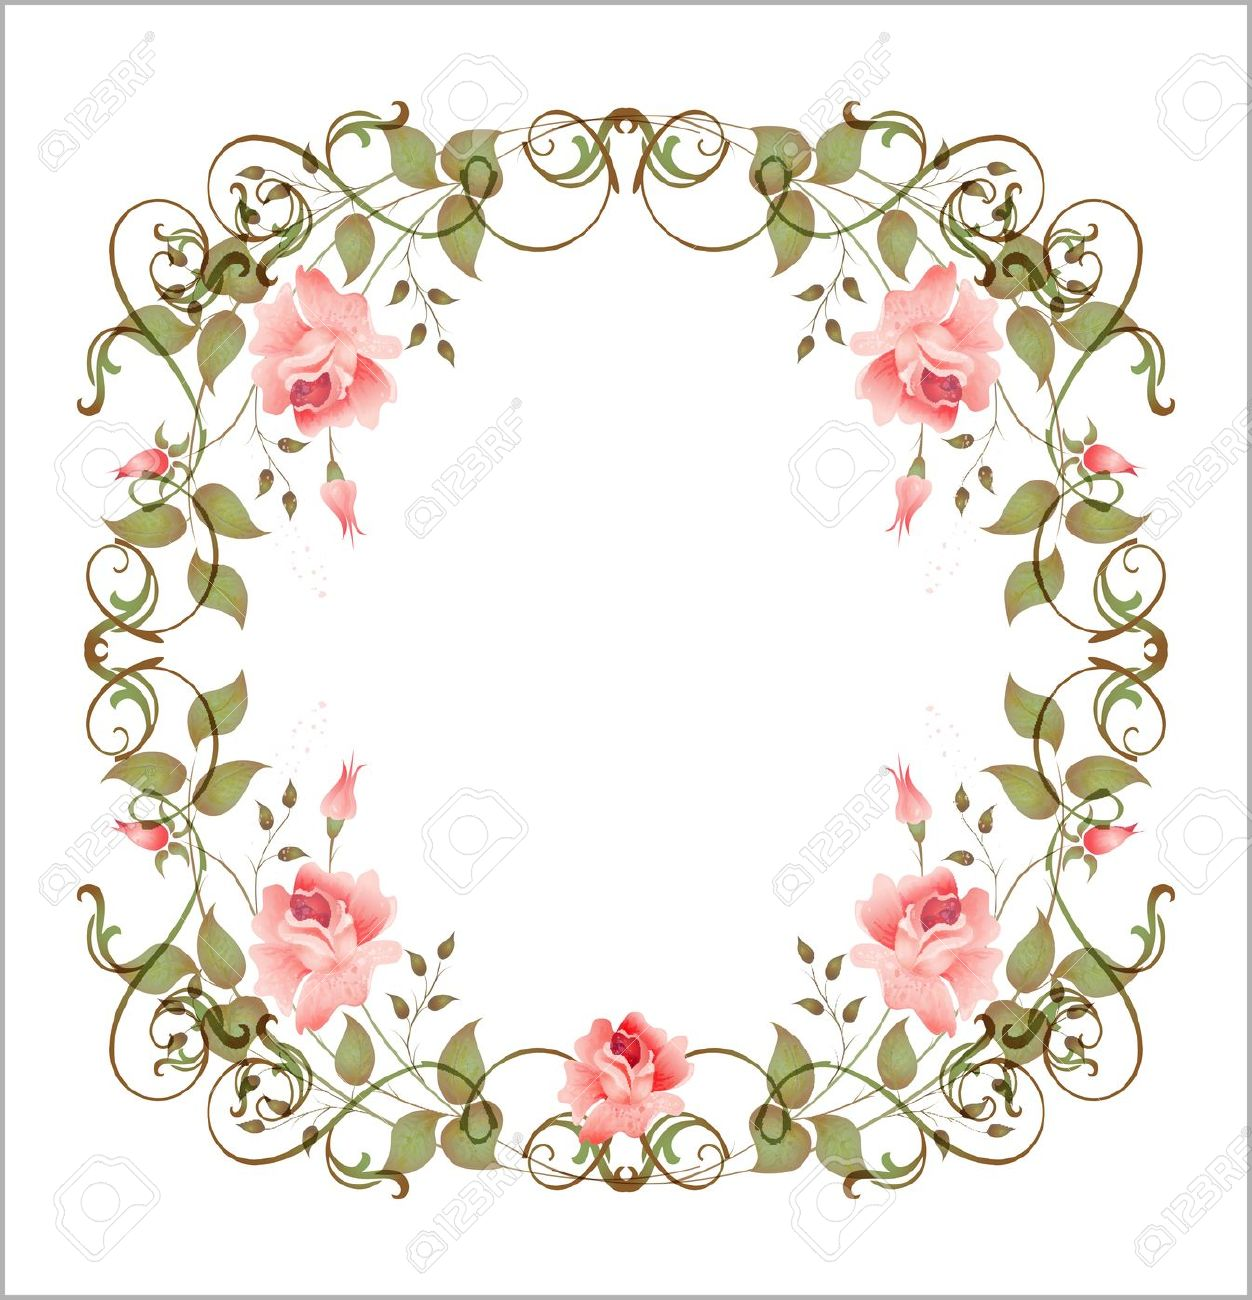 Floral border design, Graphic